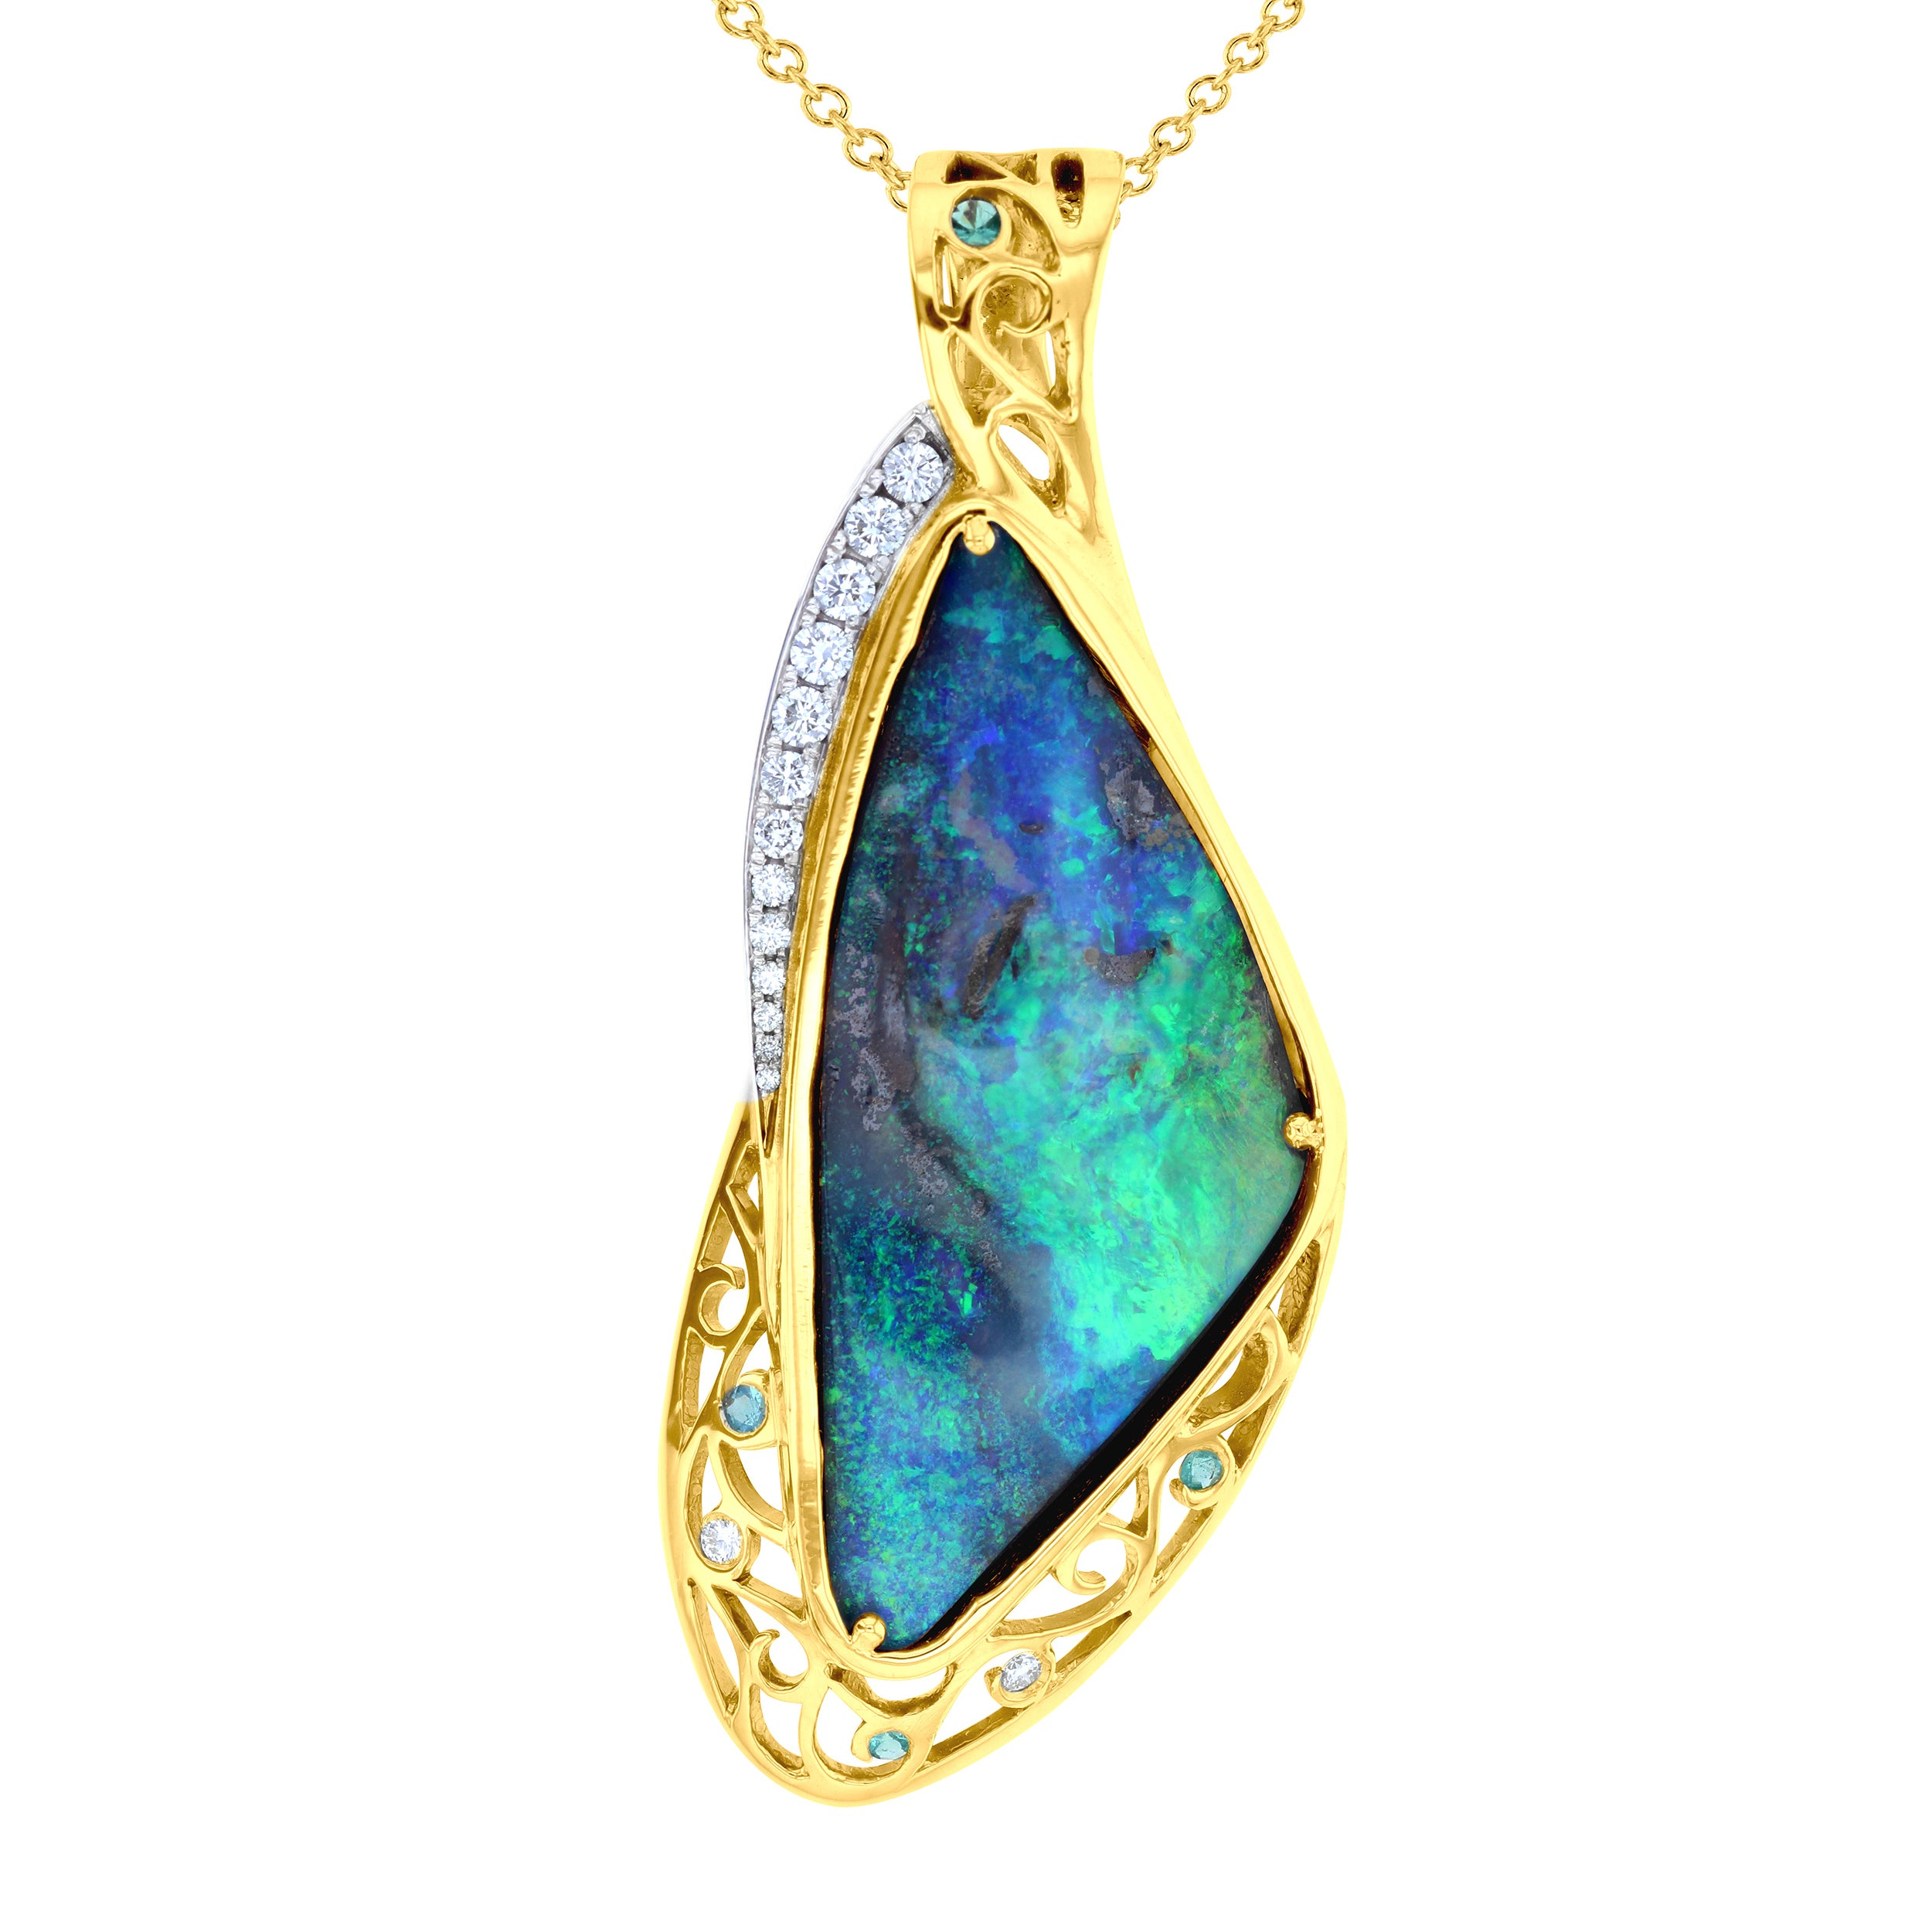 products gold kalled boulder tsavorite pearls opal pendant gallery chocolate night the cap pearl